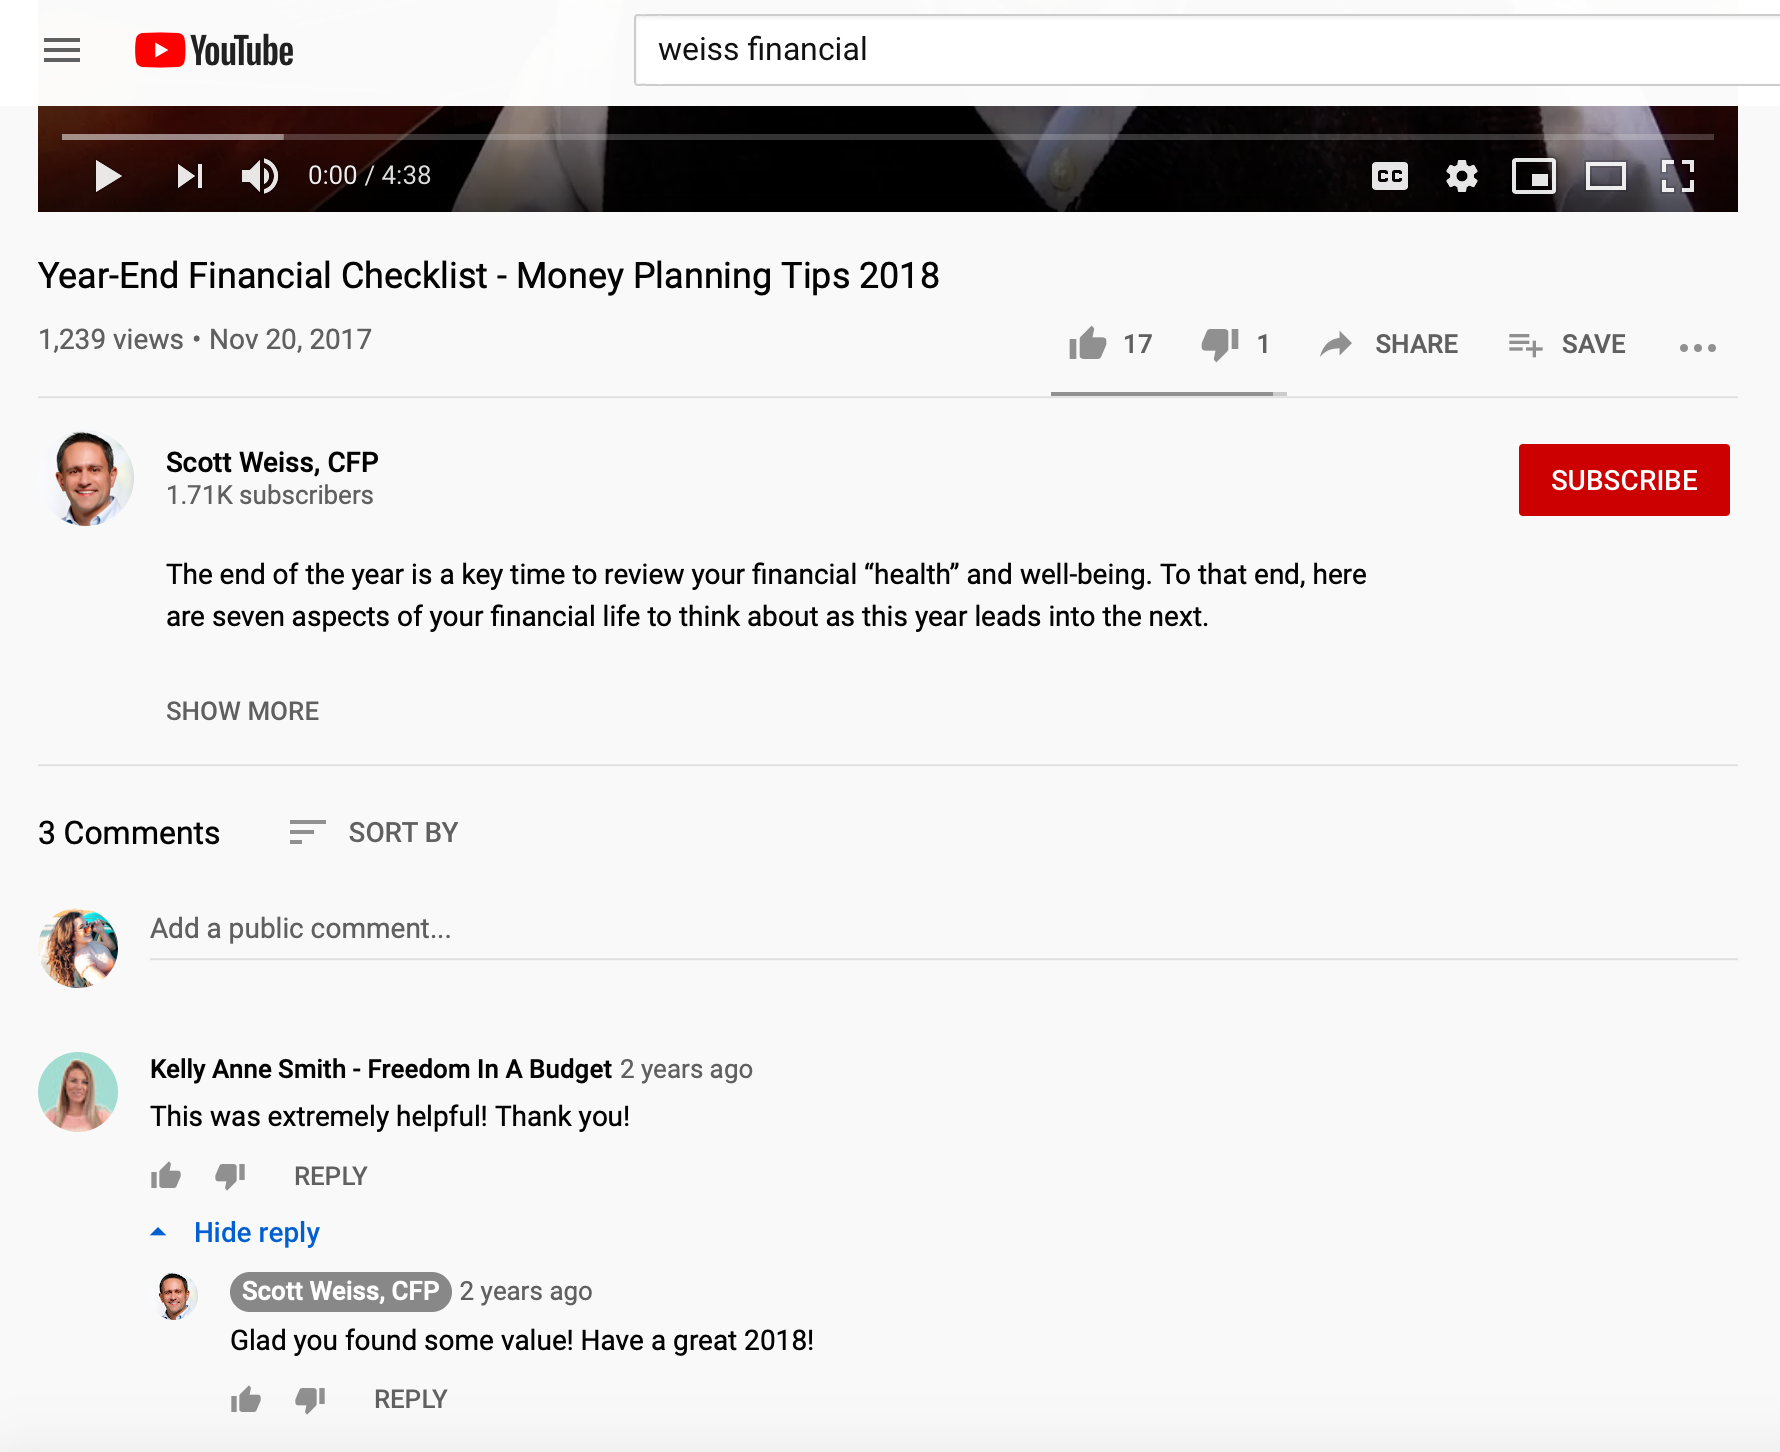 weiss financial YouTube interaction